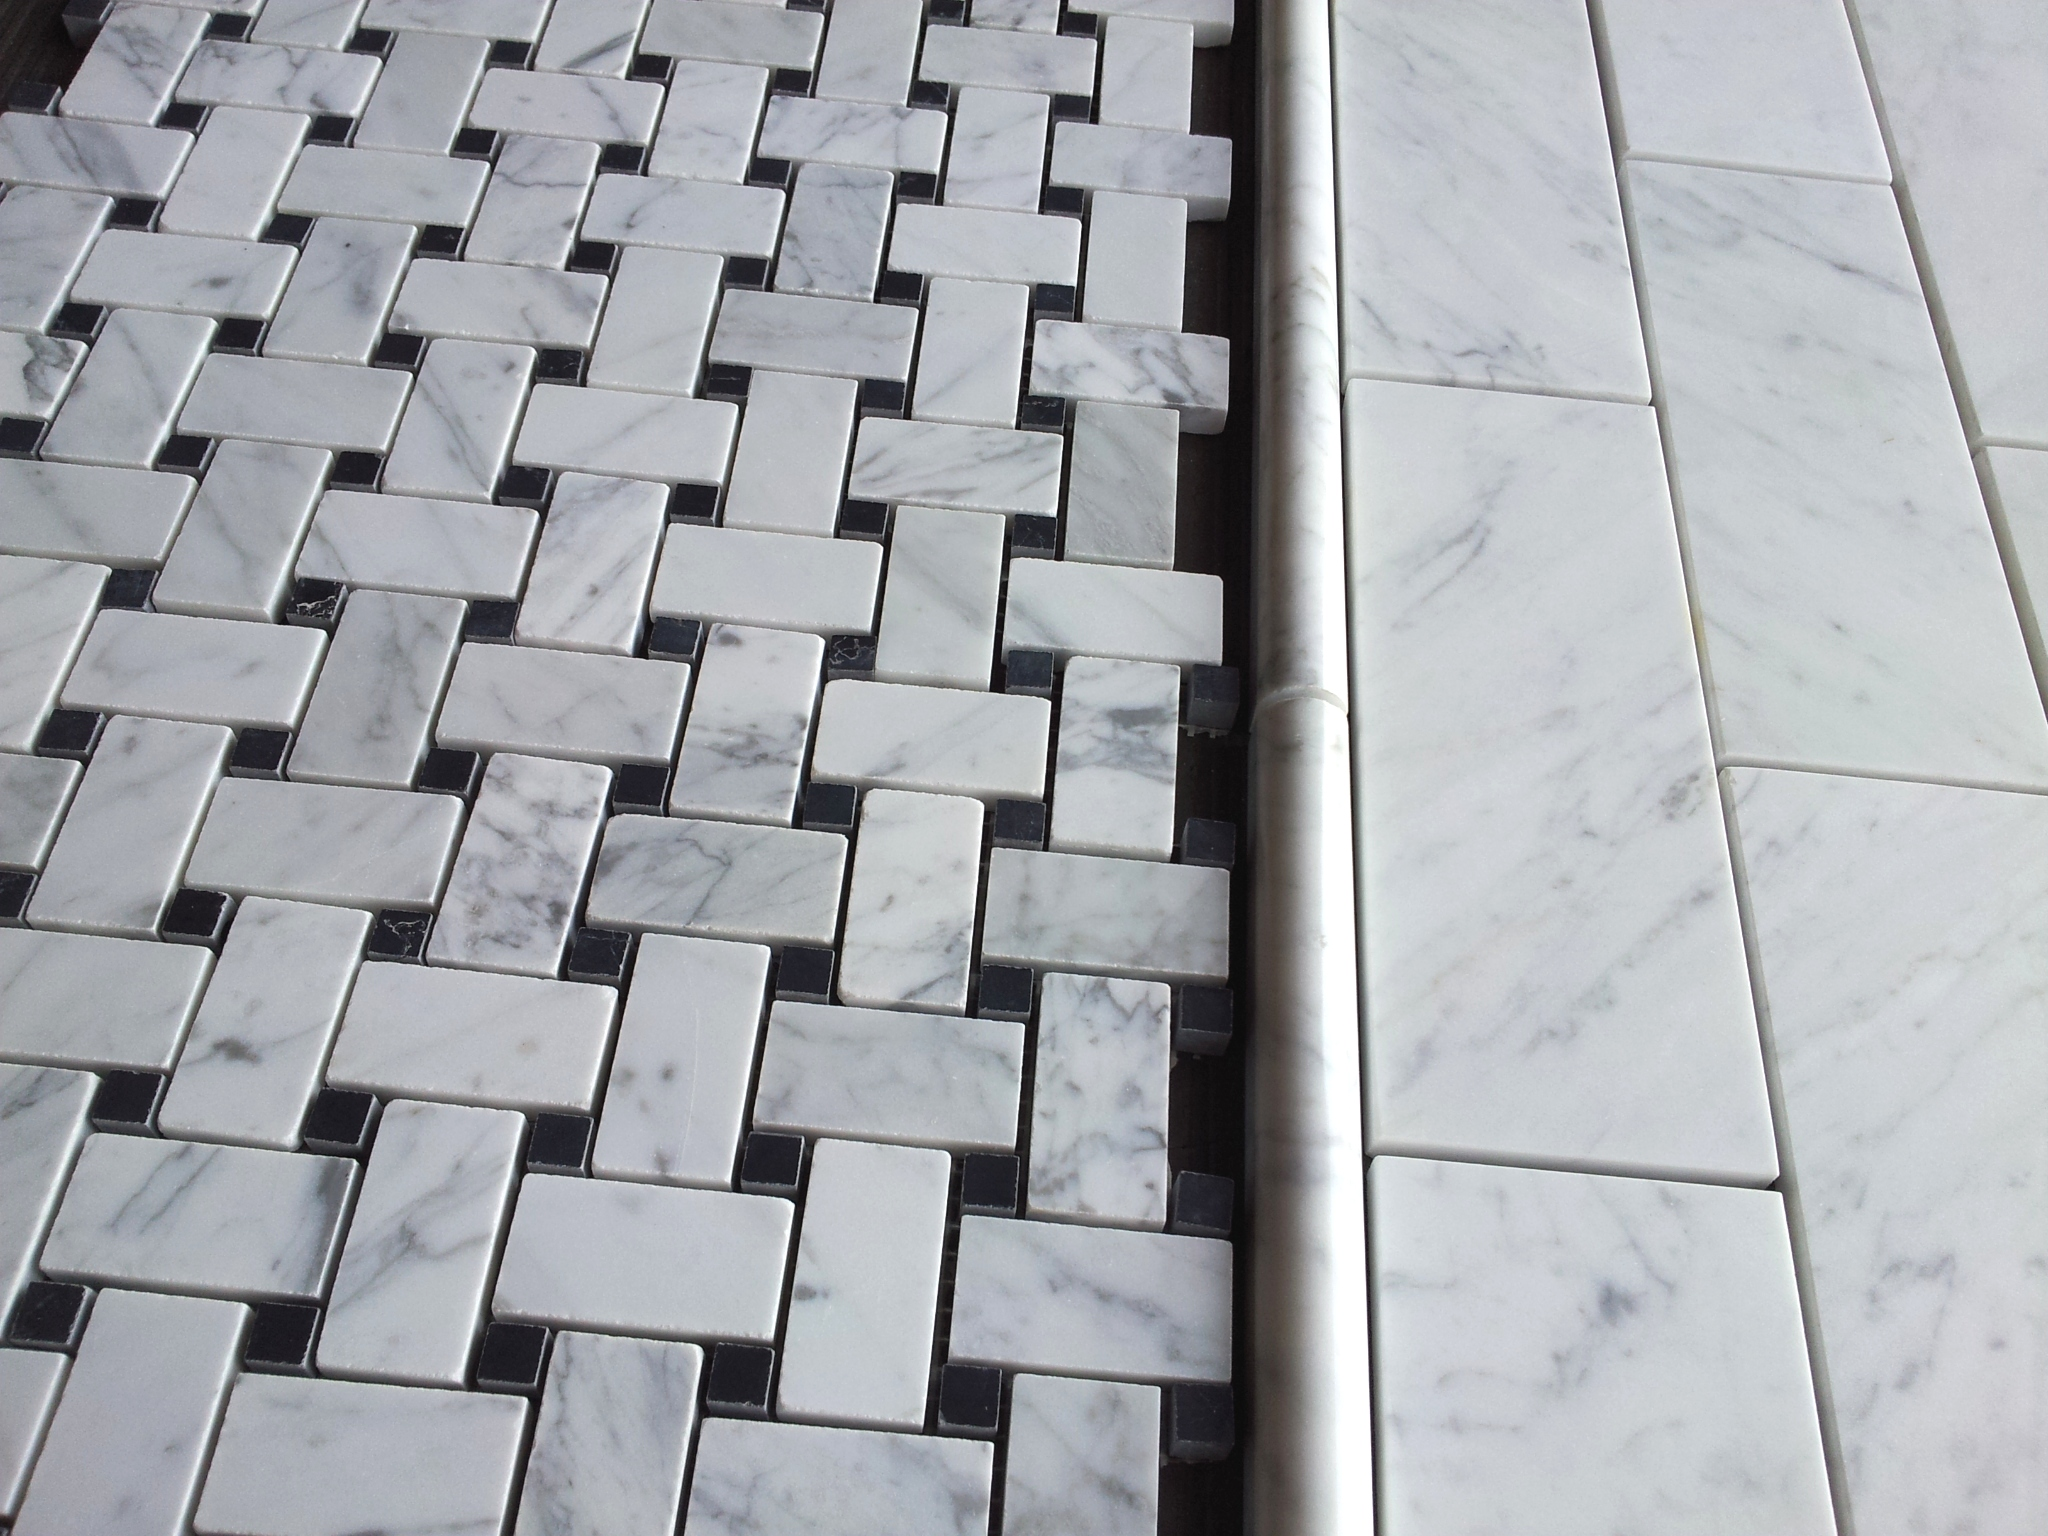 3 215 8 Carrara Tile The Builder Depot Blog